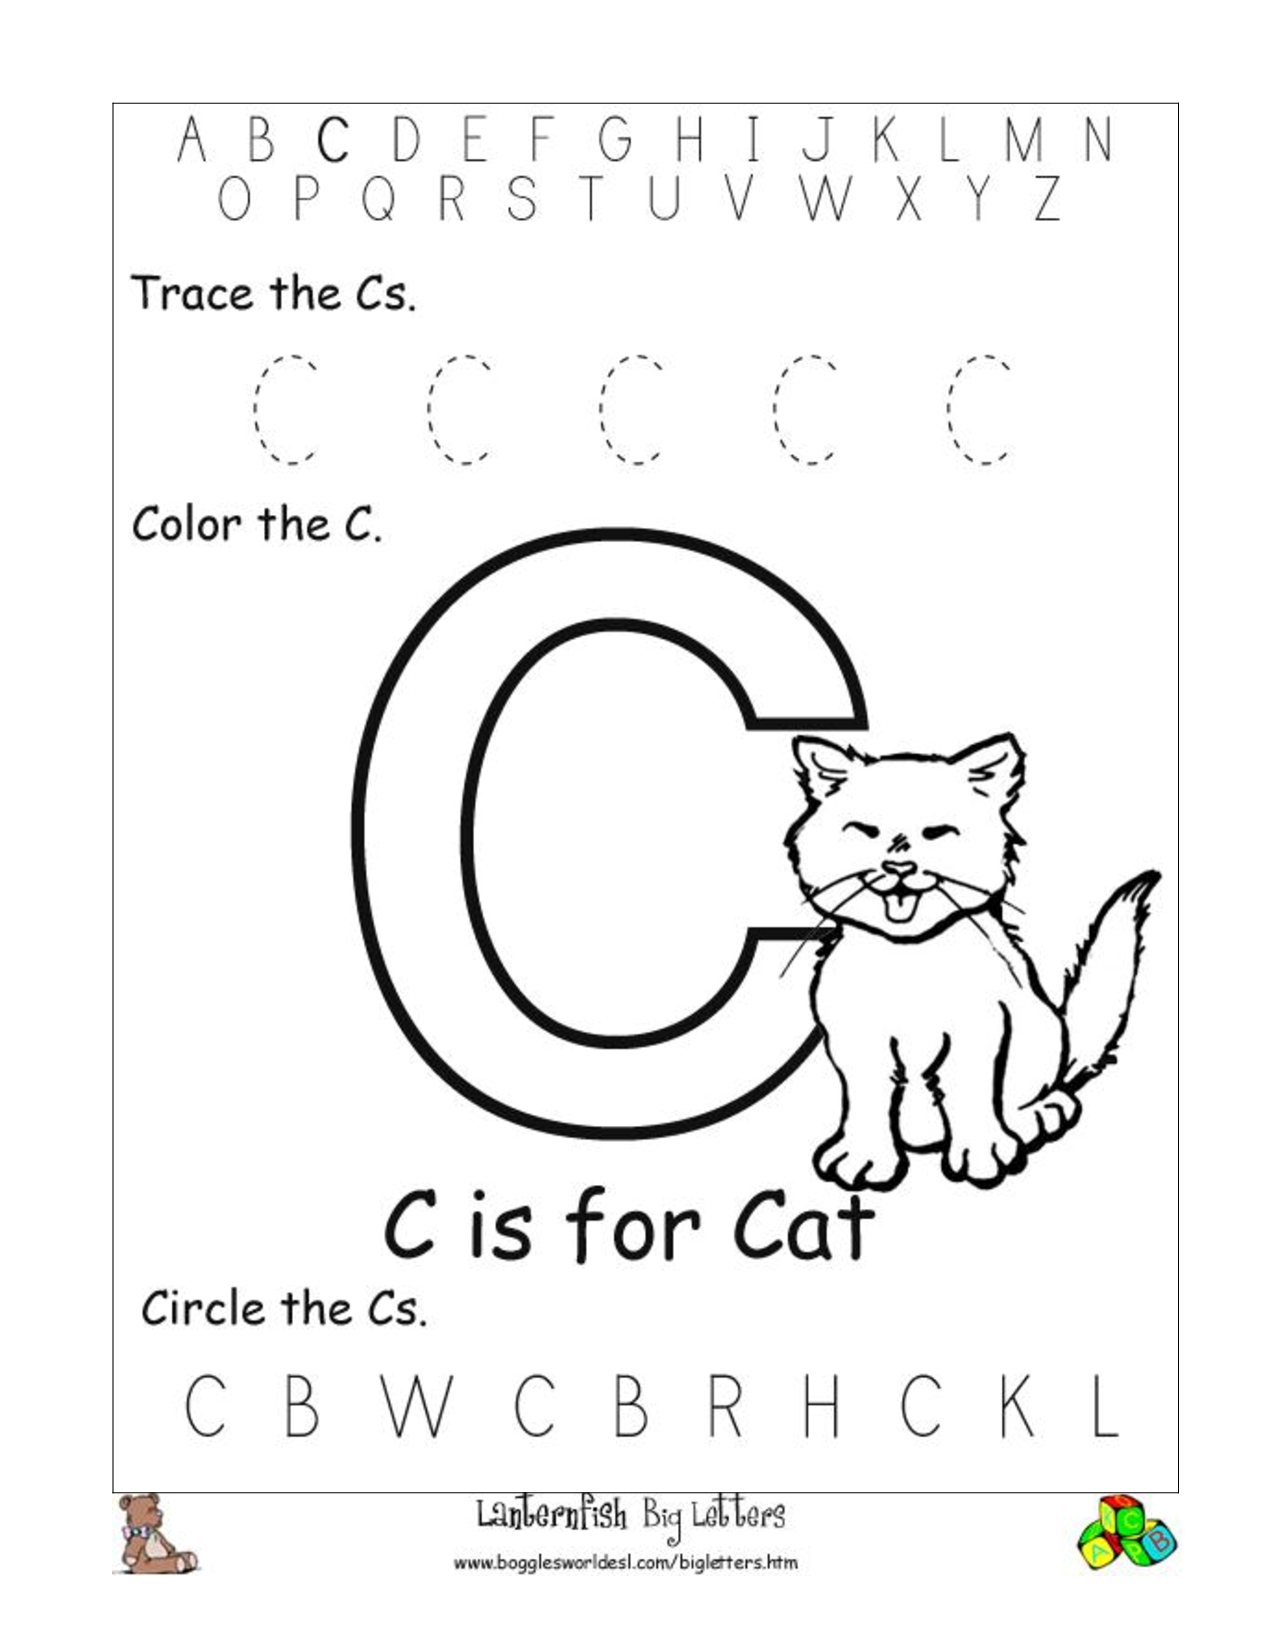 6 Best Images Of Free Printable Preschool Worksheets Letter C | Day | Free Printable Preschool Worksheets Letter C